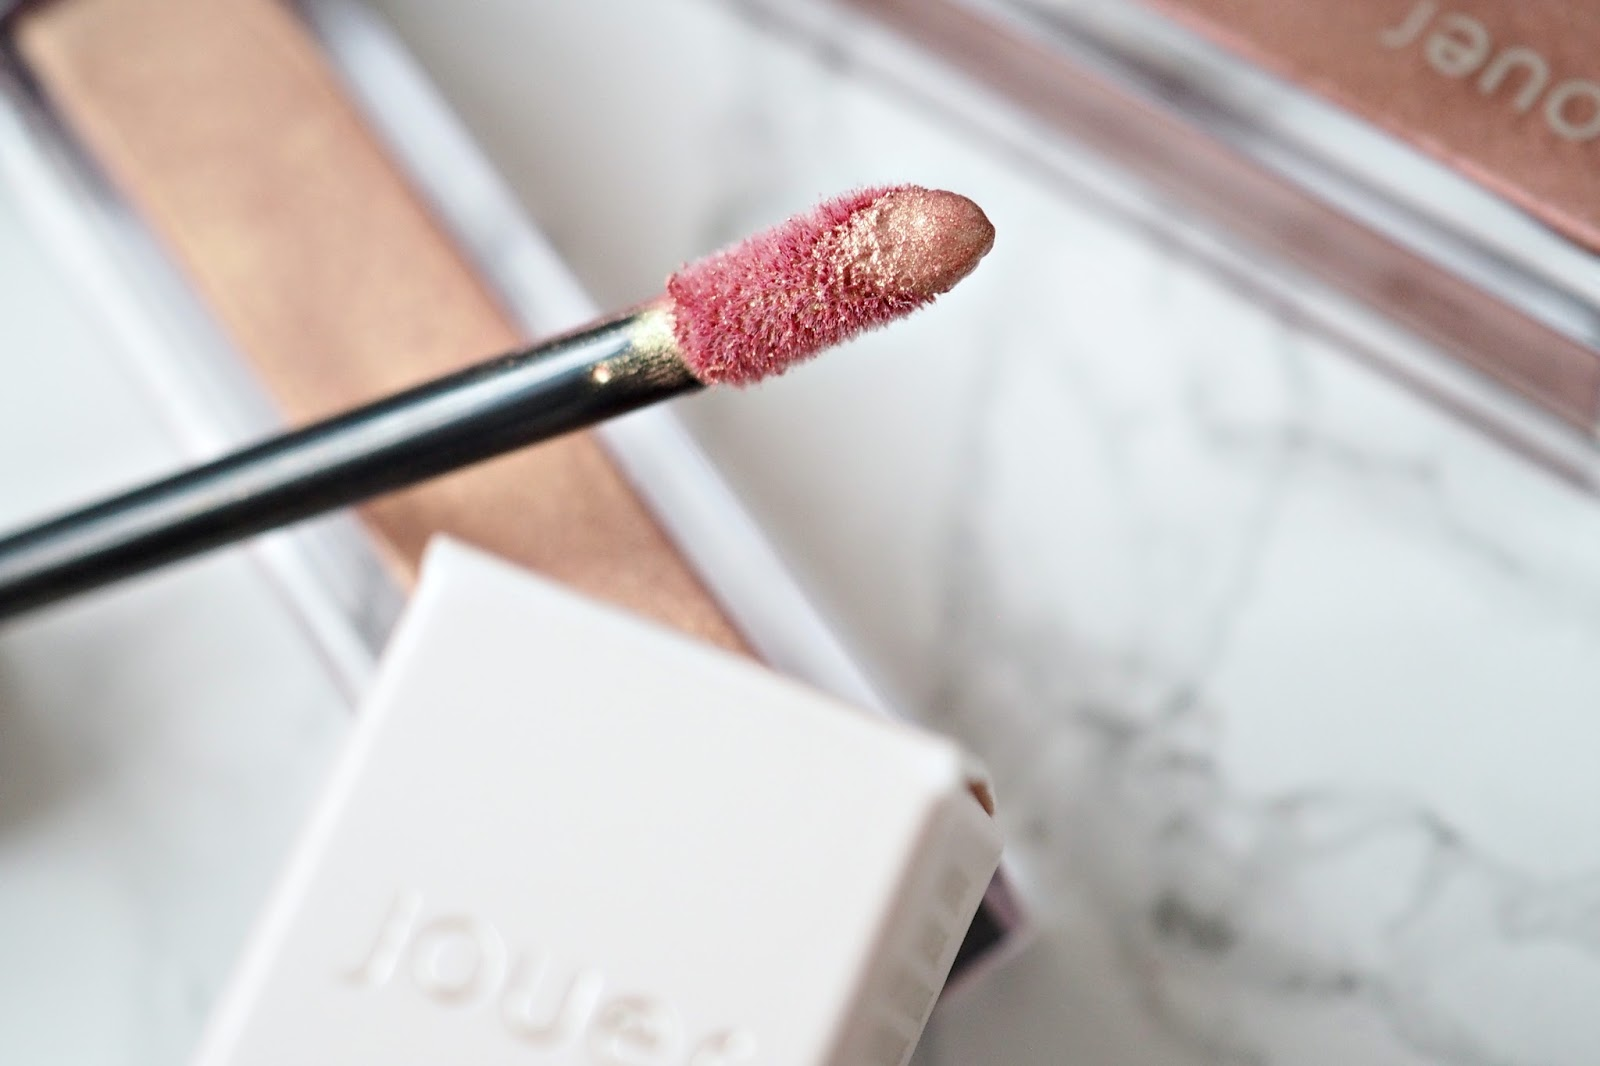 Jouer Cosmetics long lasting Lip Creme Lipsticks in 'Papaye' Review & Swatches